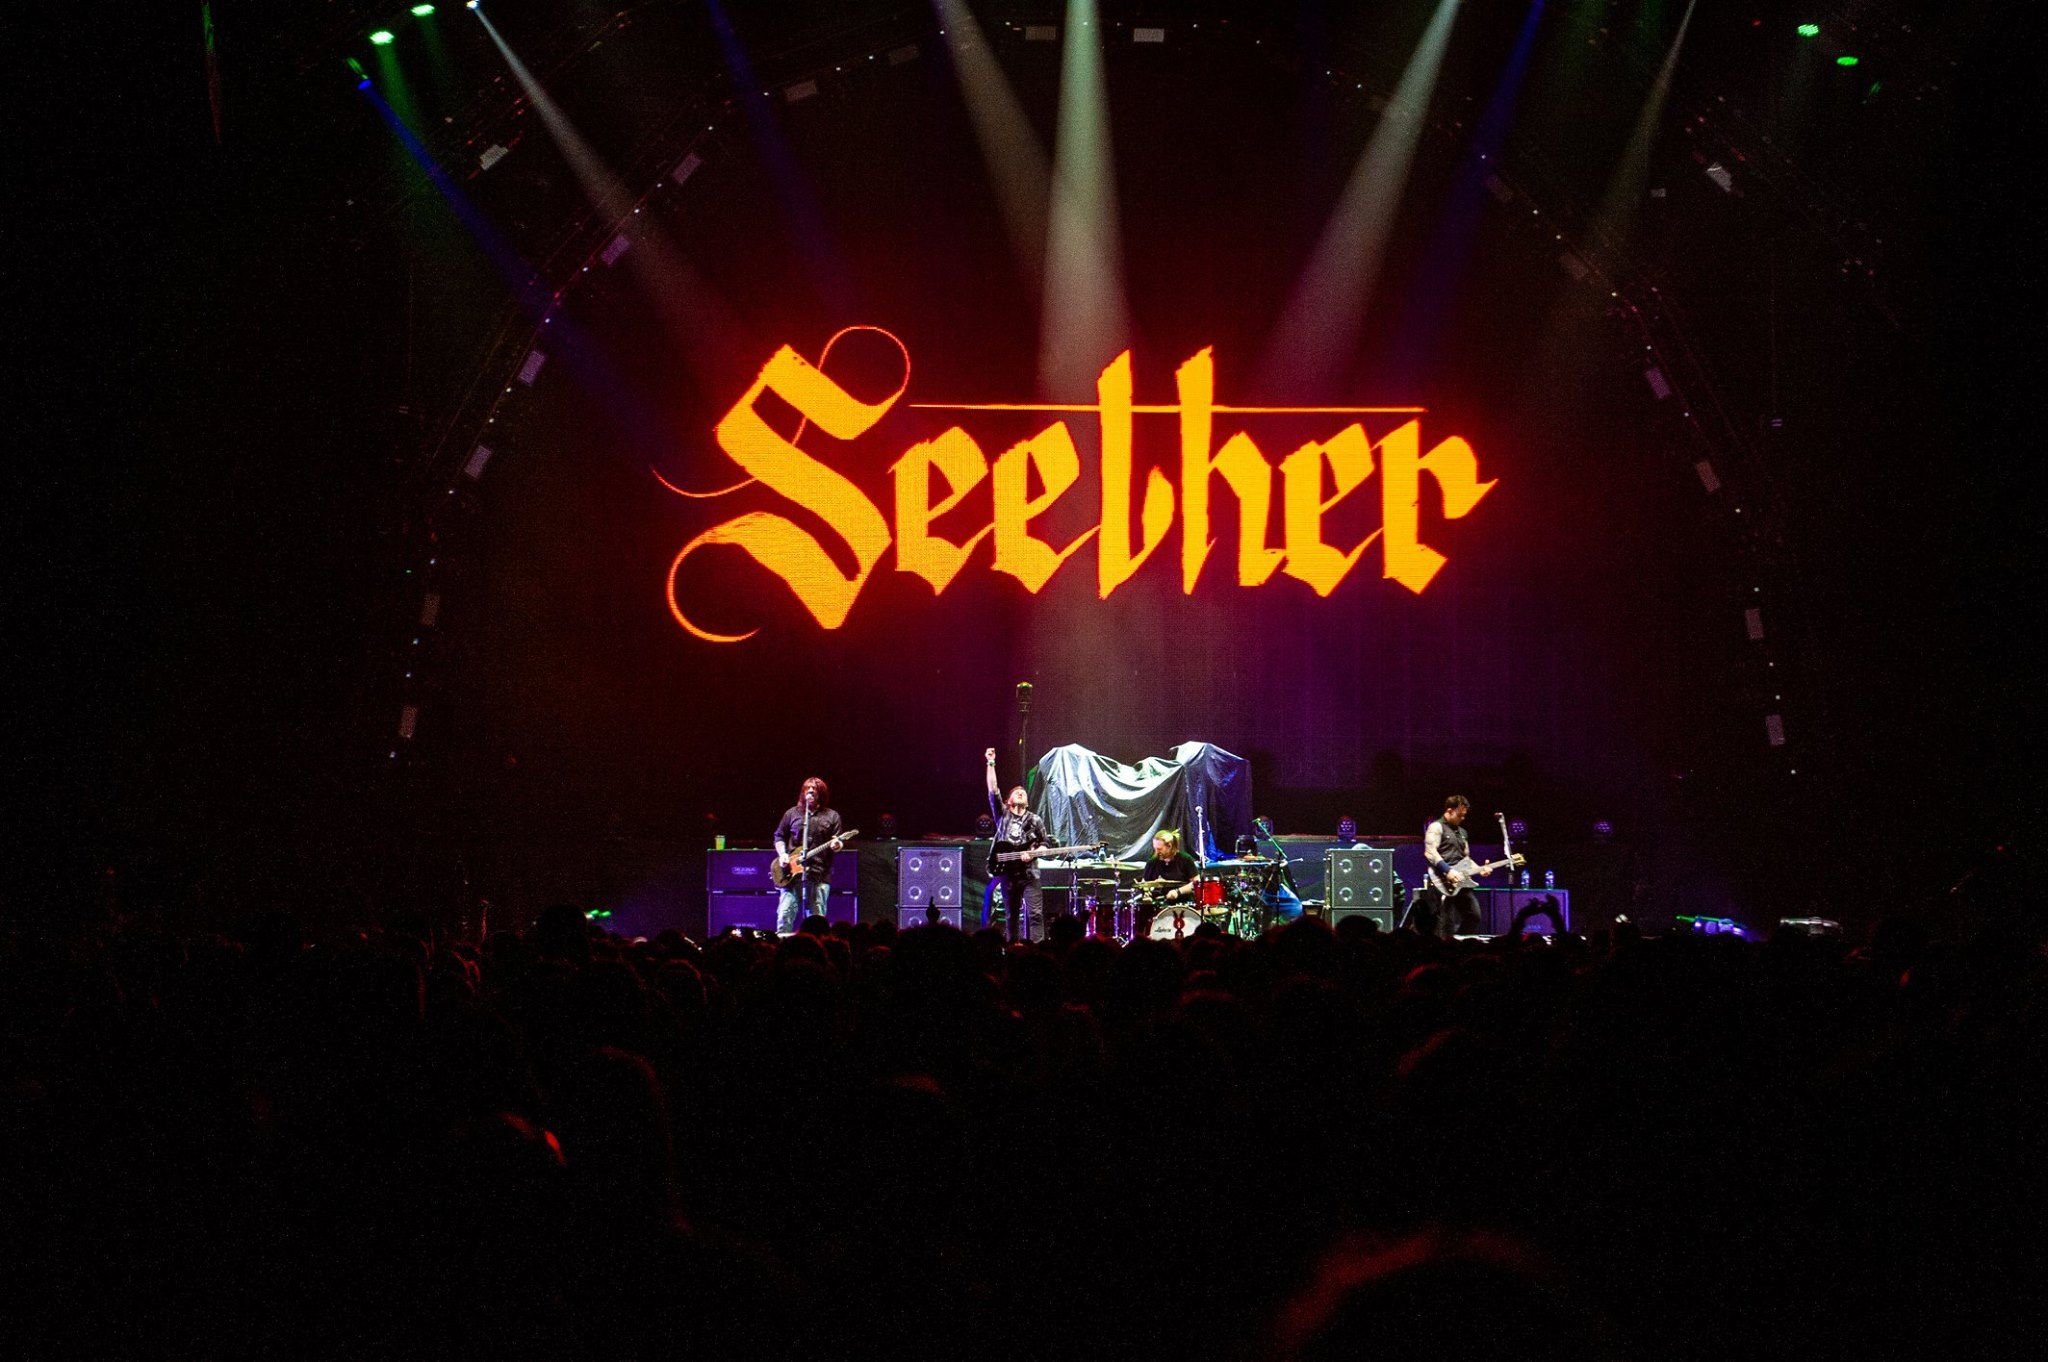 Seether - Tour 2018